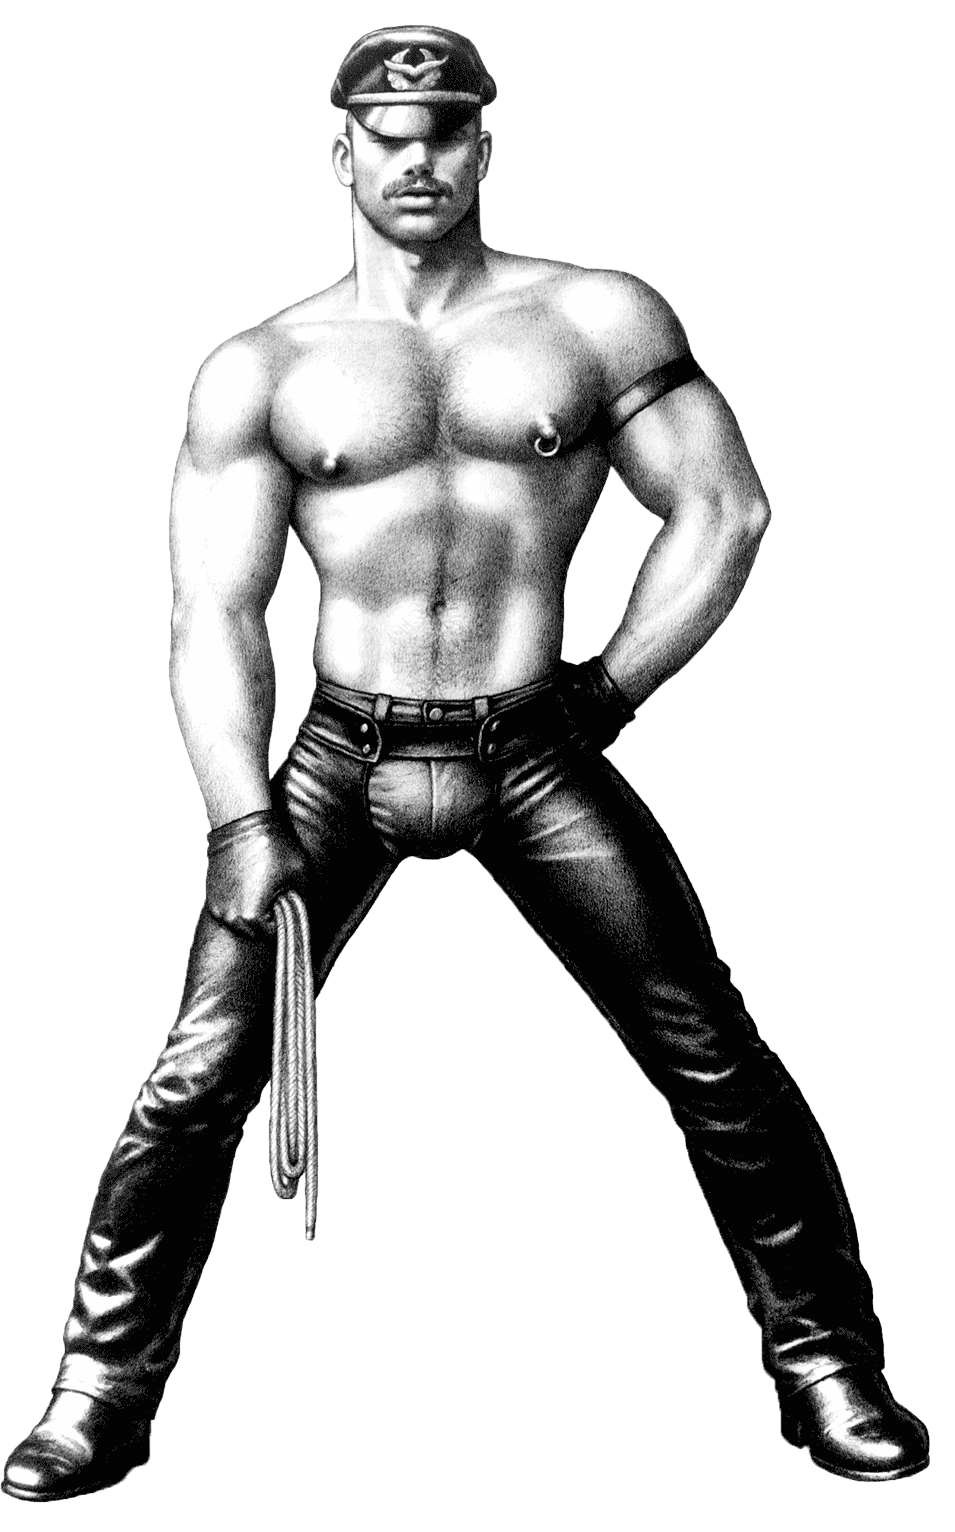 Tom Of Finland's Hypermasculine Gay Images In The Pleasure Of Play